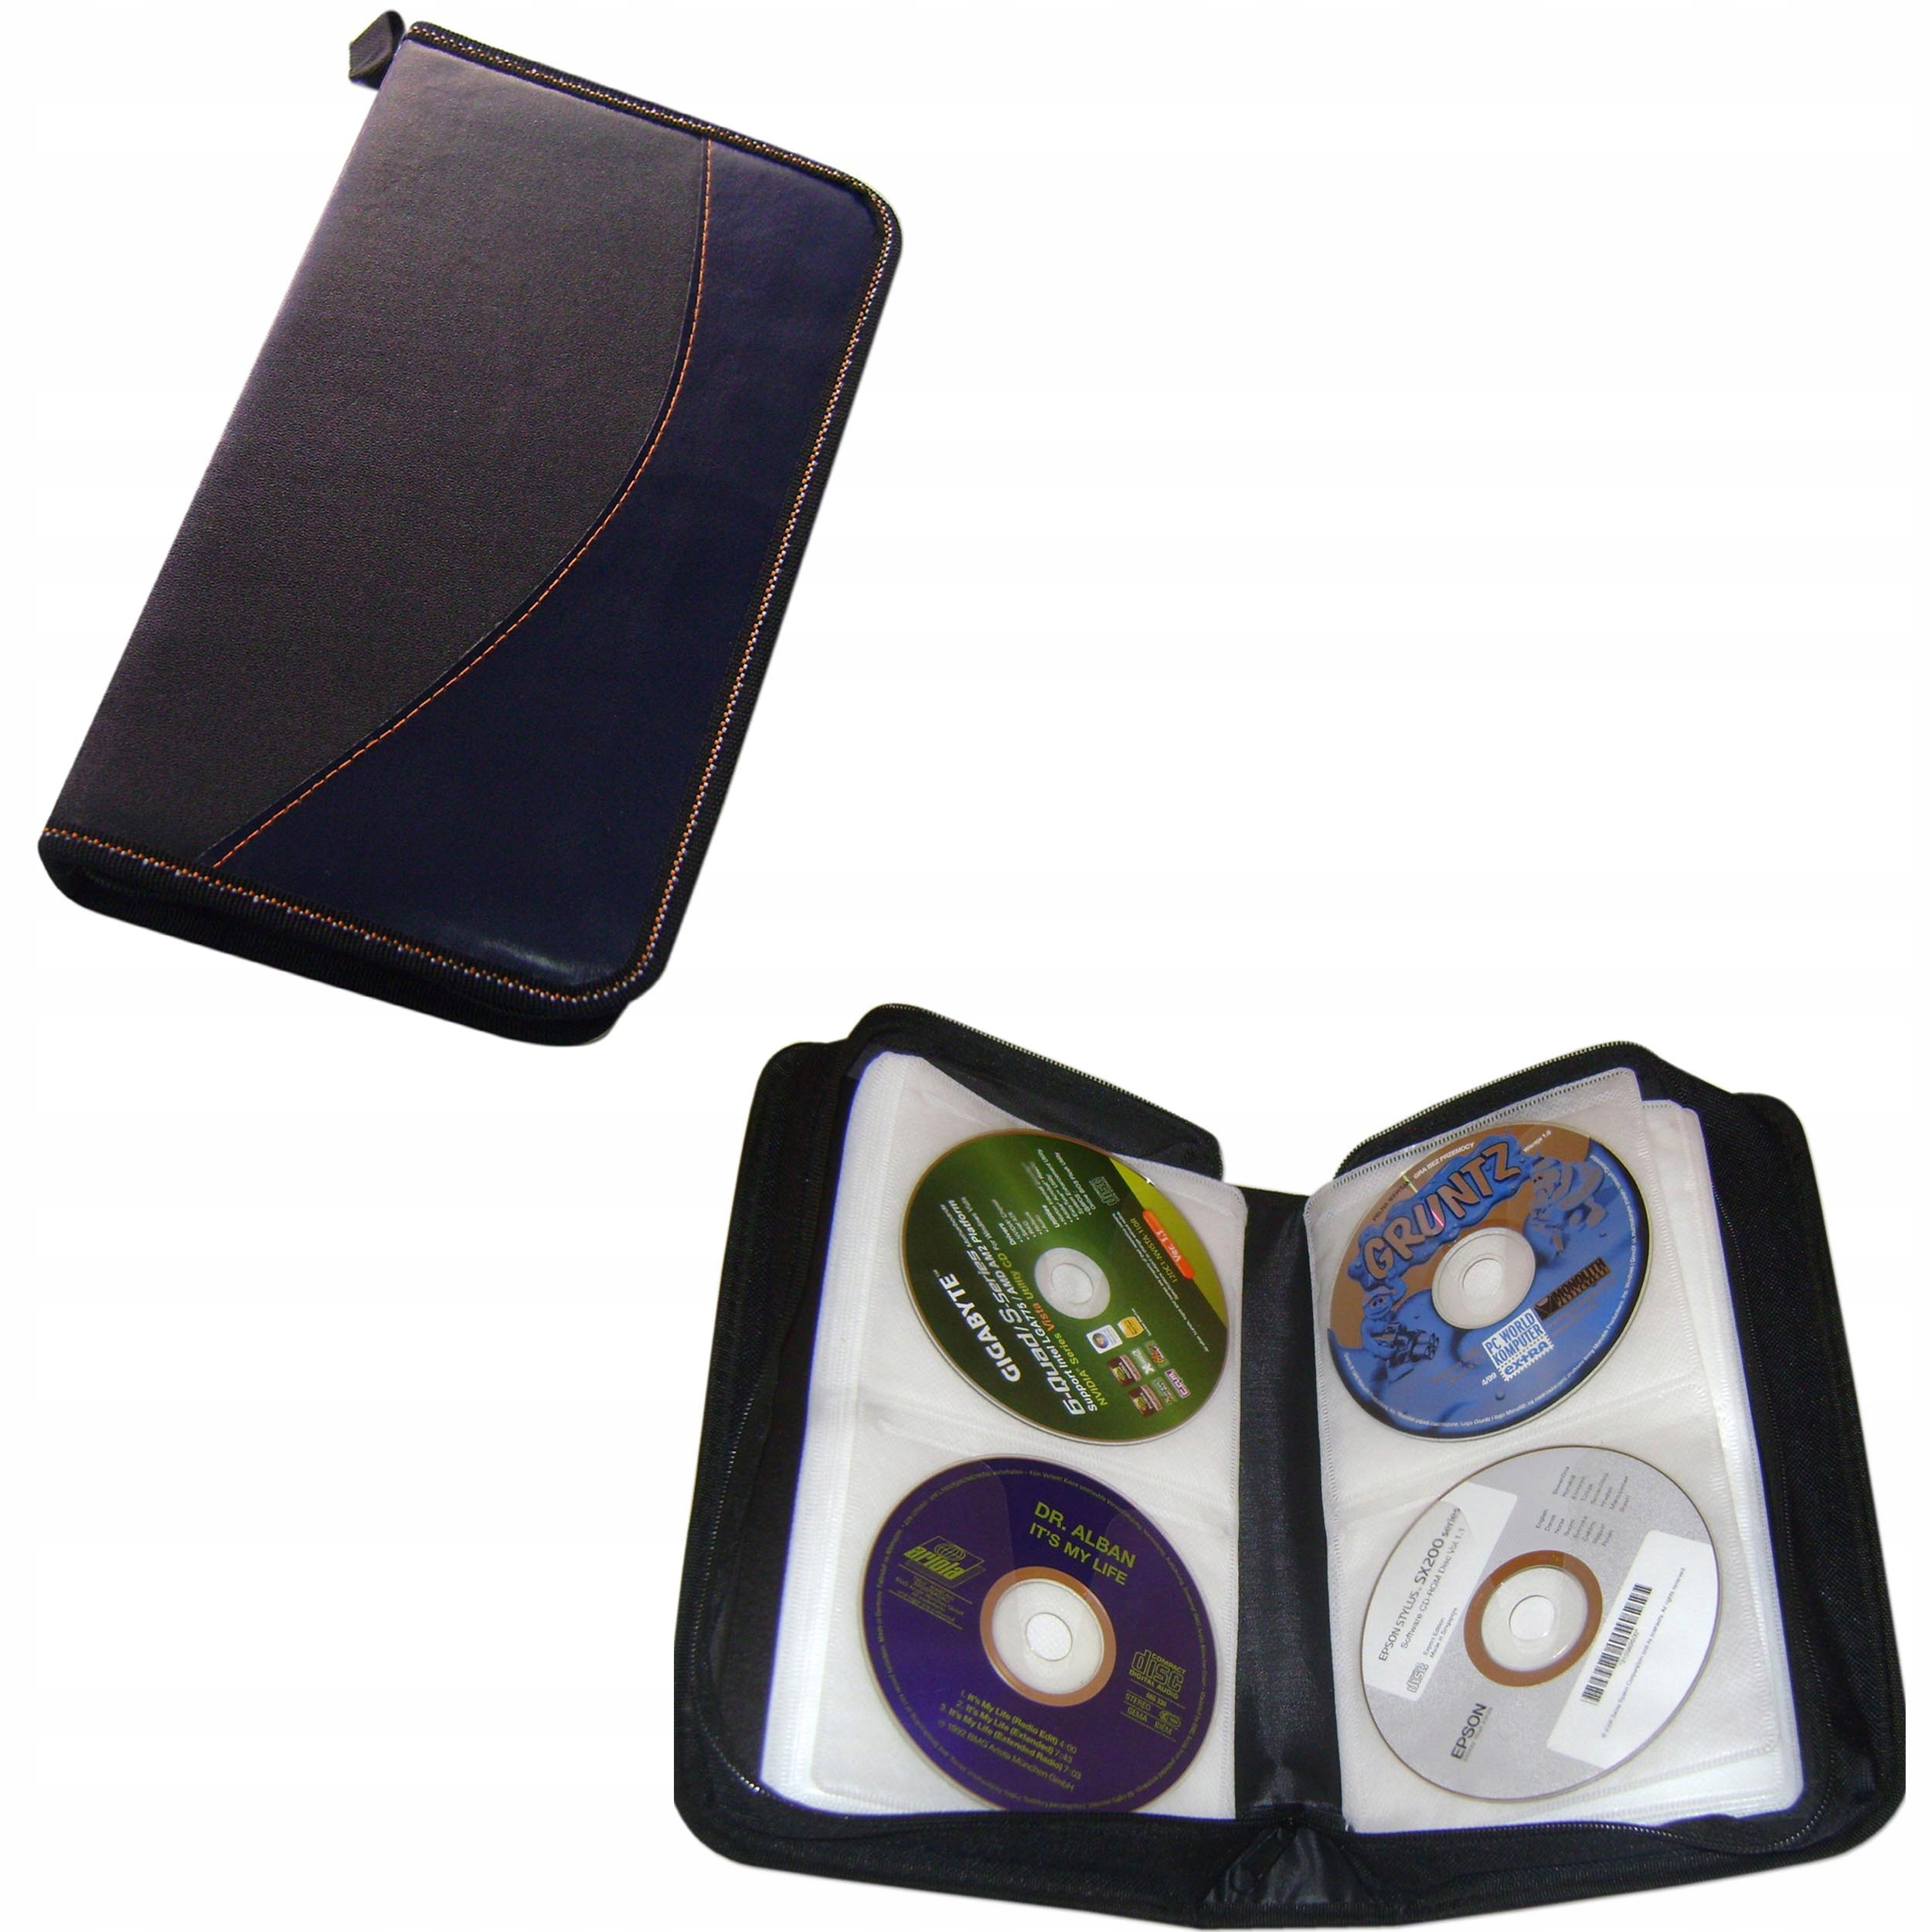 Item CASE cover pouch CASE for CD DVD 80szt SKIN